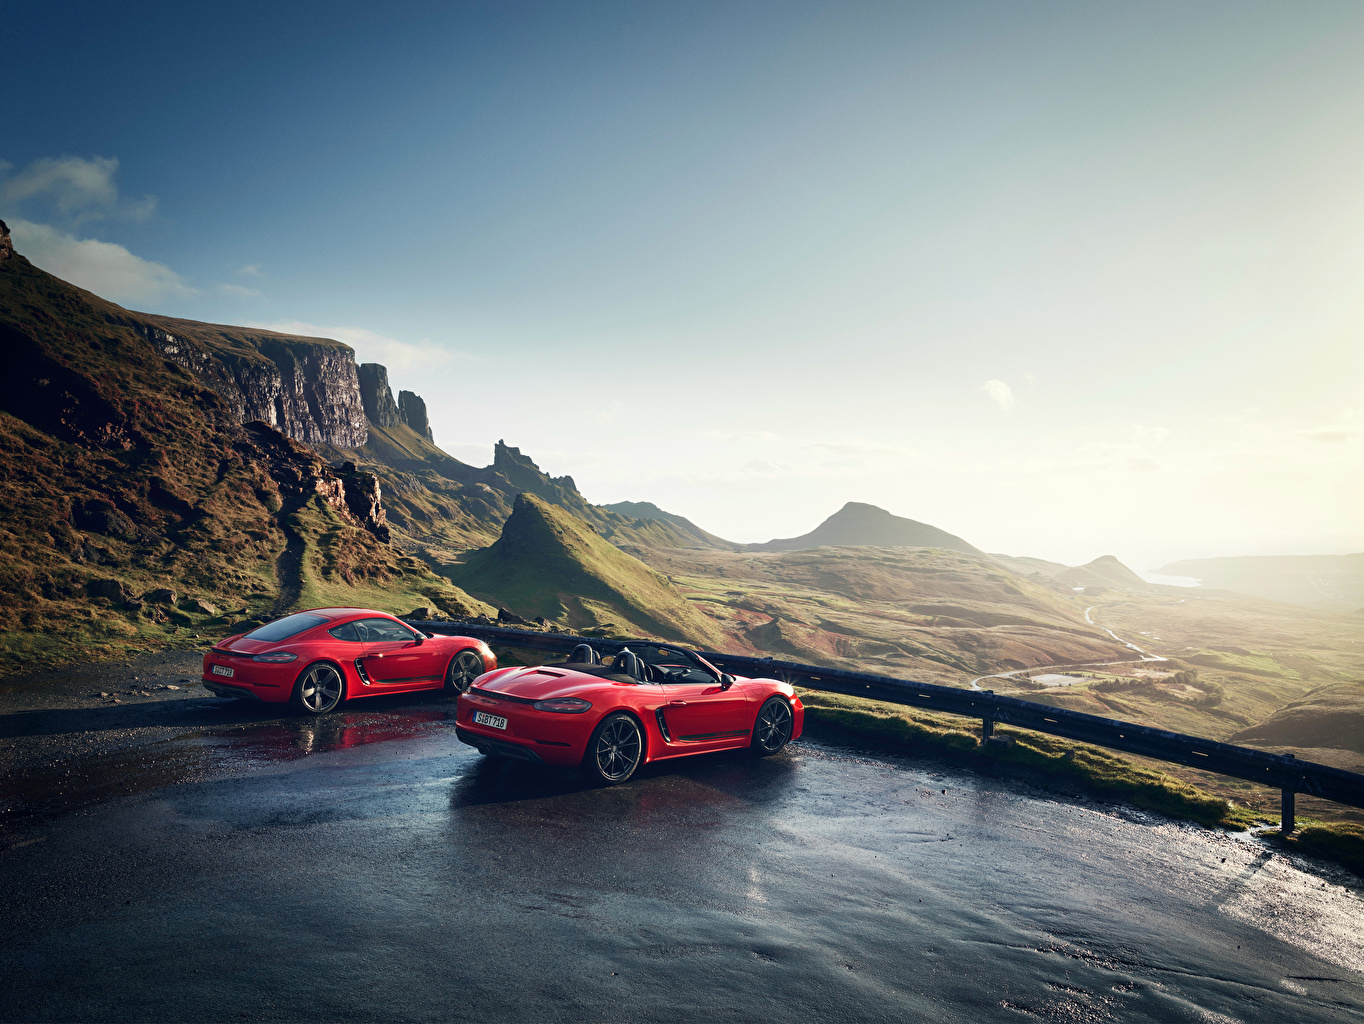 Wallpaper Porsche 718 Cayman S Boxster 718 Red Red Two Metallic